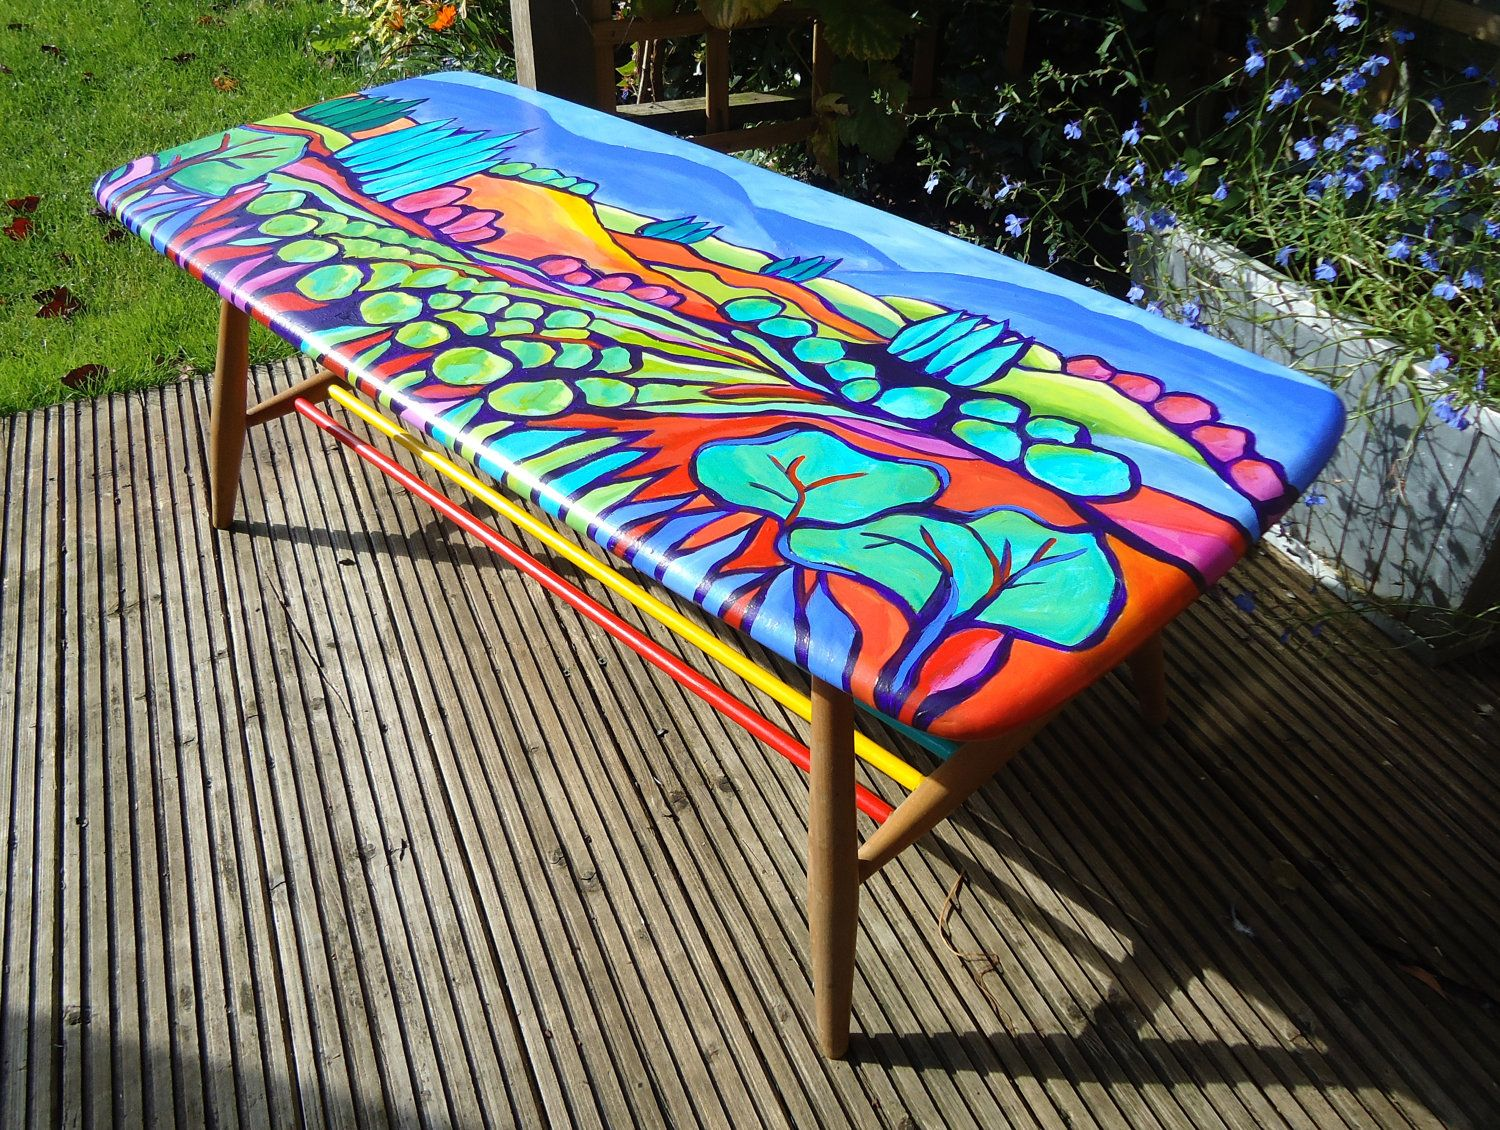 Couchtisch Bemalen Hand Painted Coffee Table Via The Lady Loves To Paint Via